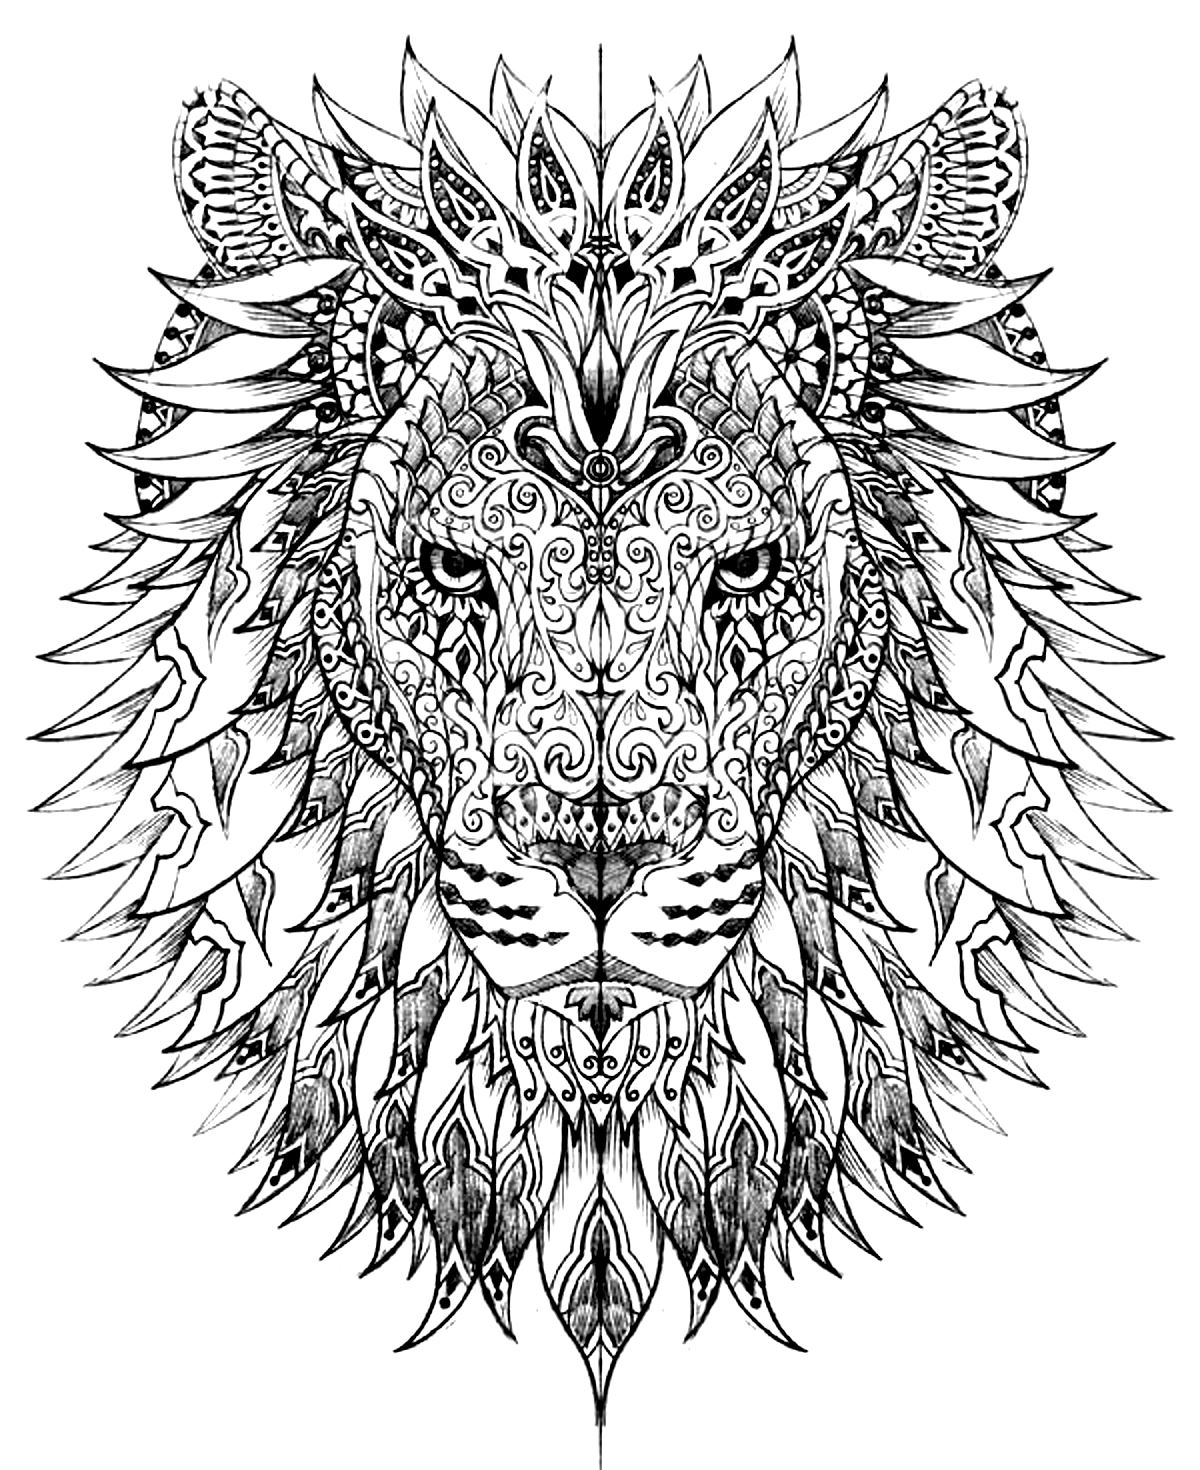 Animaux coloriages difficiles pour adultes coloriage - Coloriages lion ...